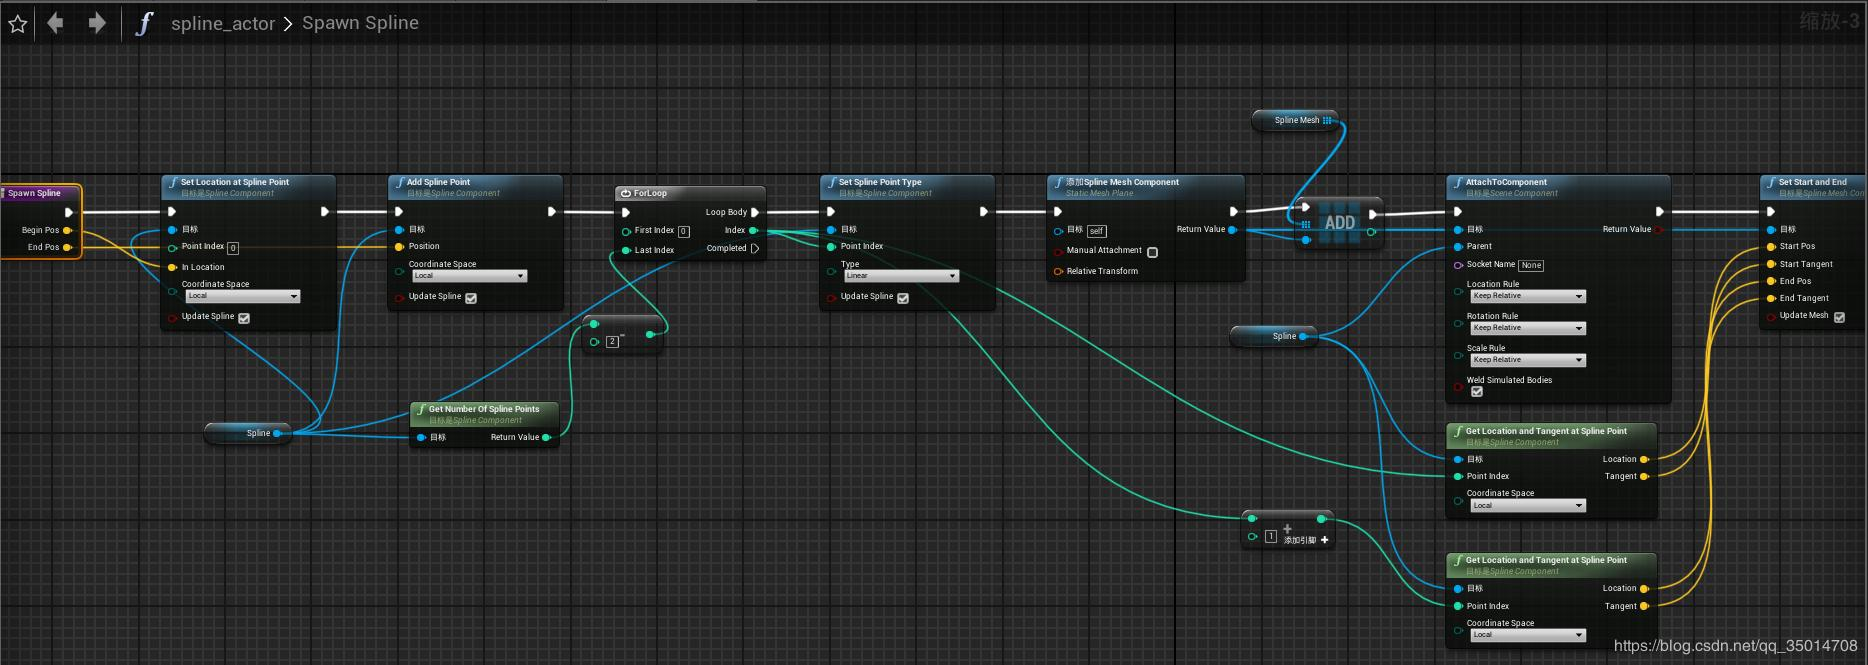 Ue4 dynamically generates and destroys splines and